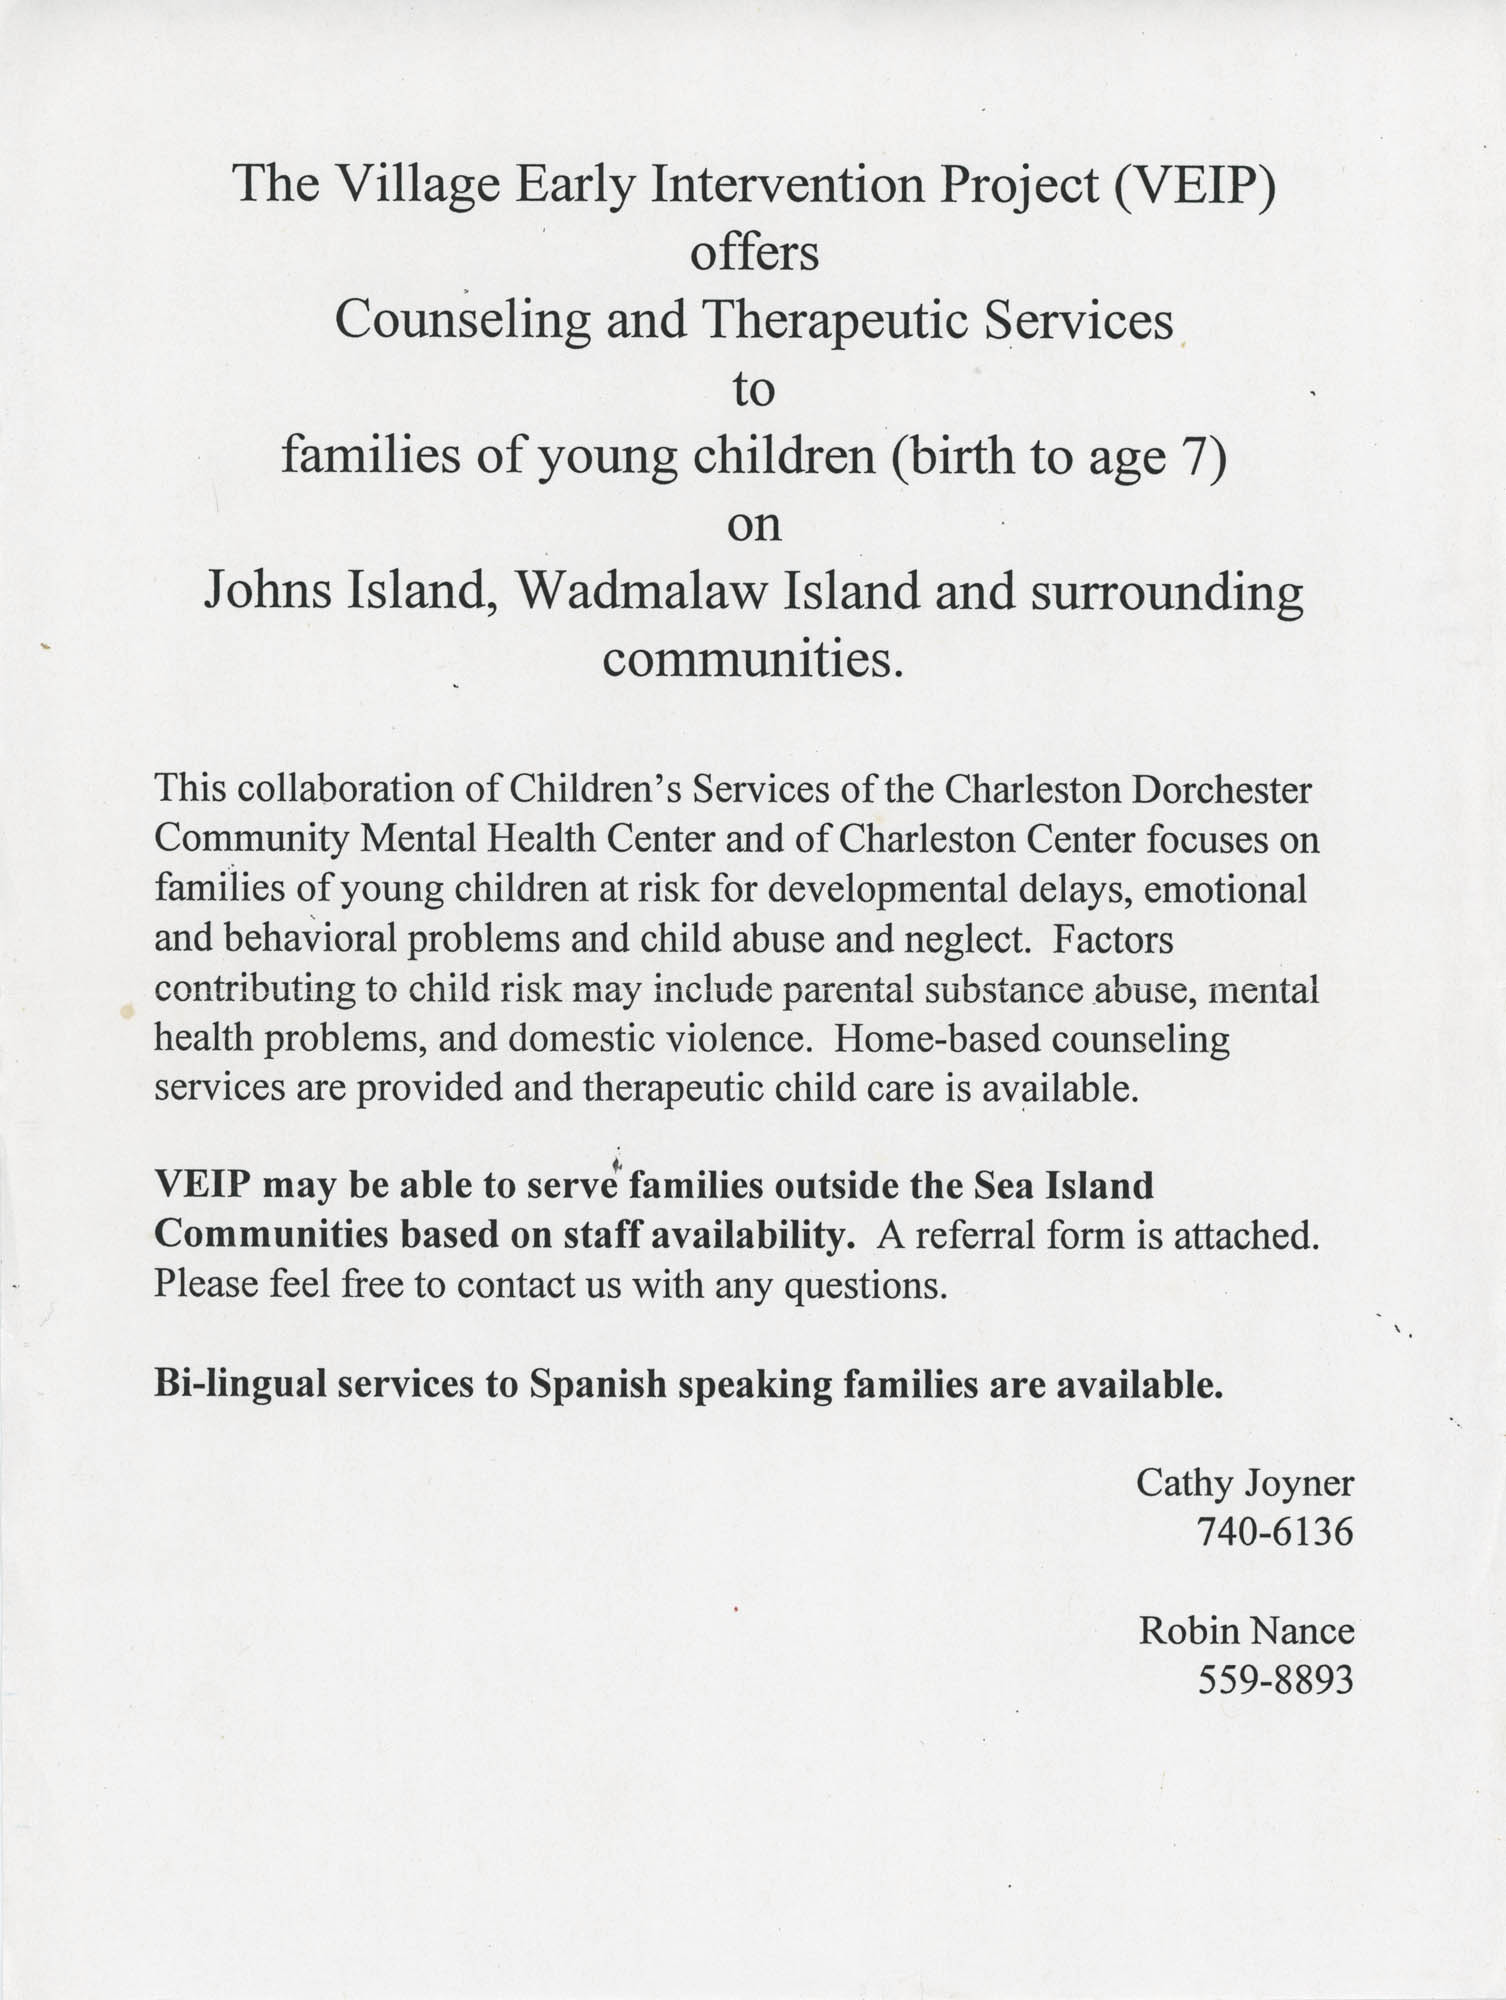 Volante de Village Early Intervention Project, Charleston Dorchester Community Mental Health Center  /  The Village Early Intervention Project Flyer, Charleston Dorchester Mental Health Center